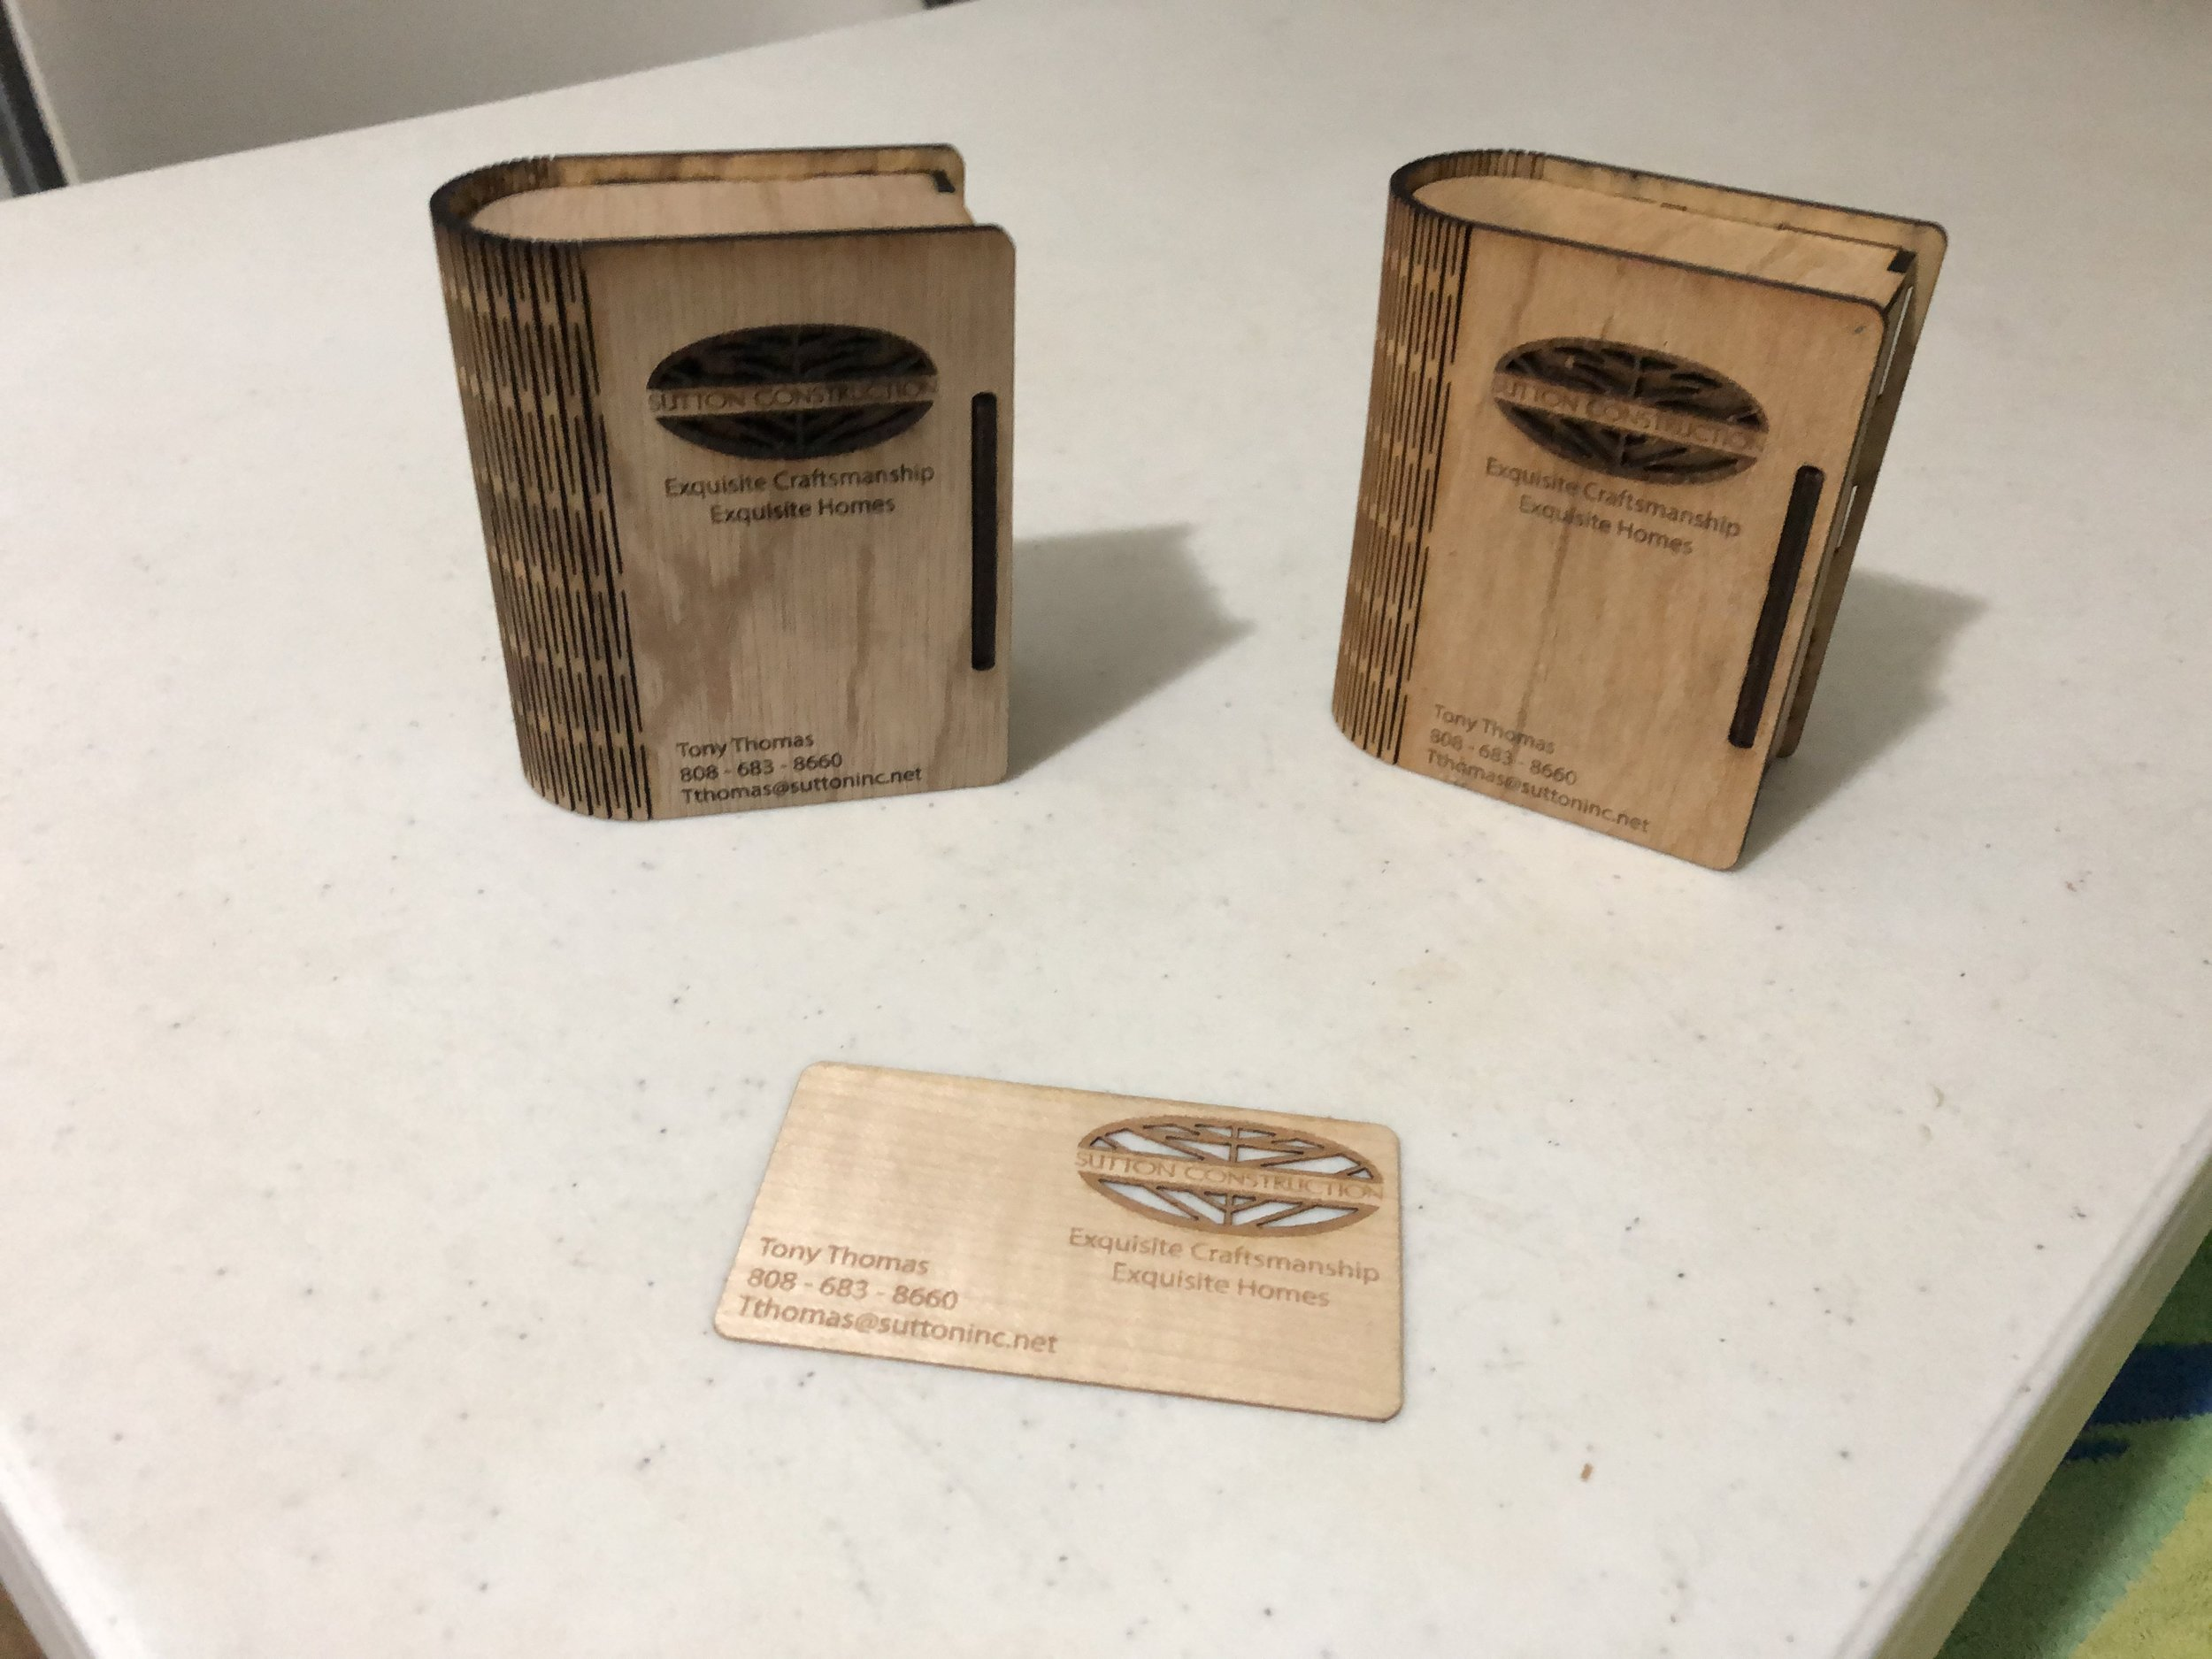 Business Cards and Holder